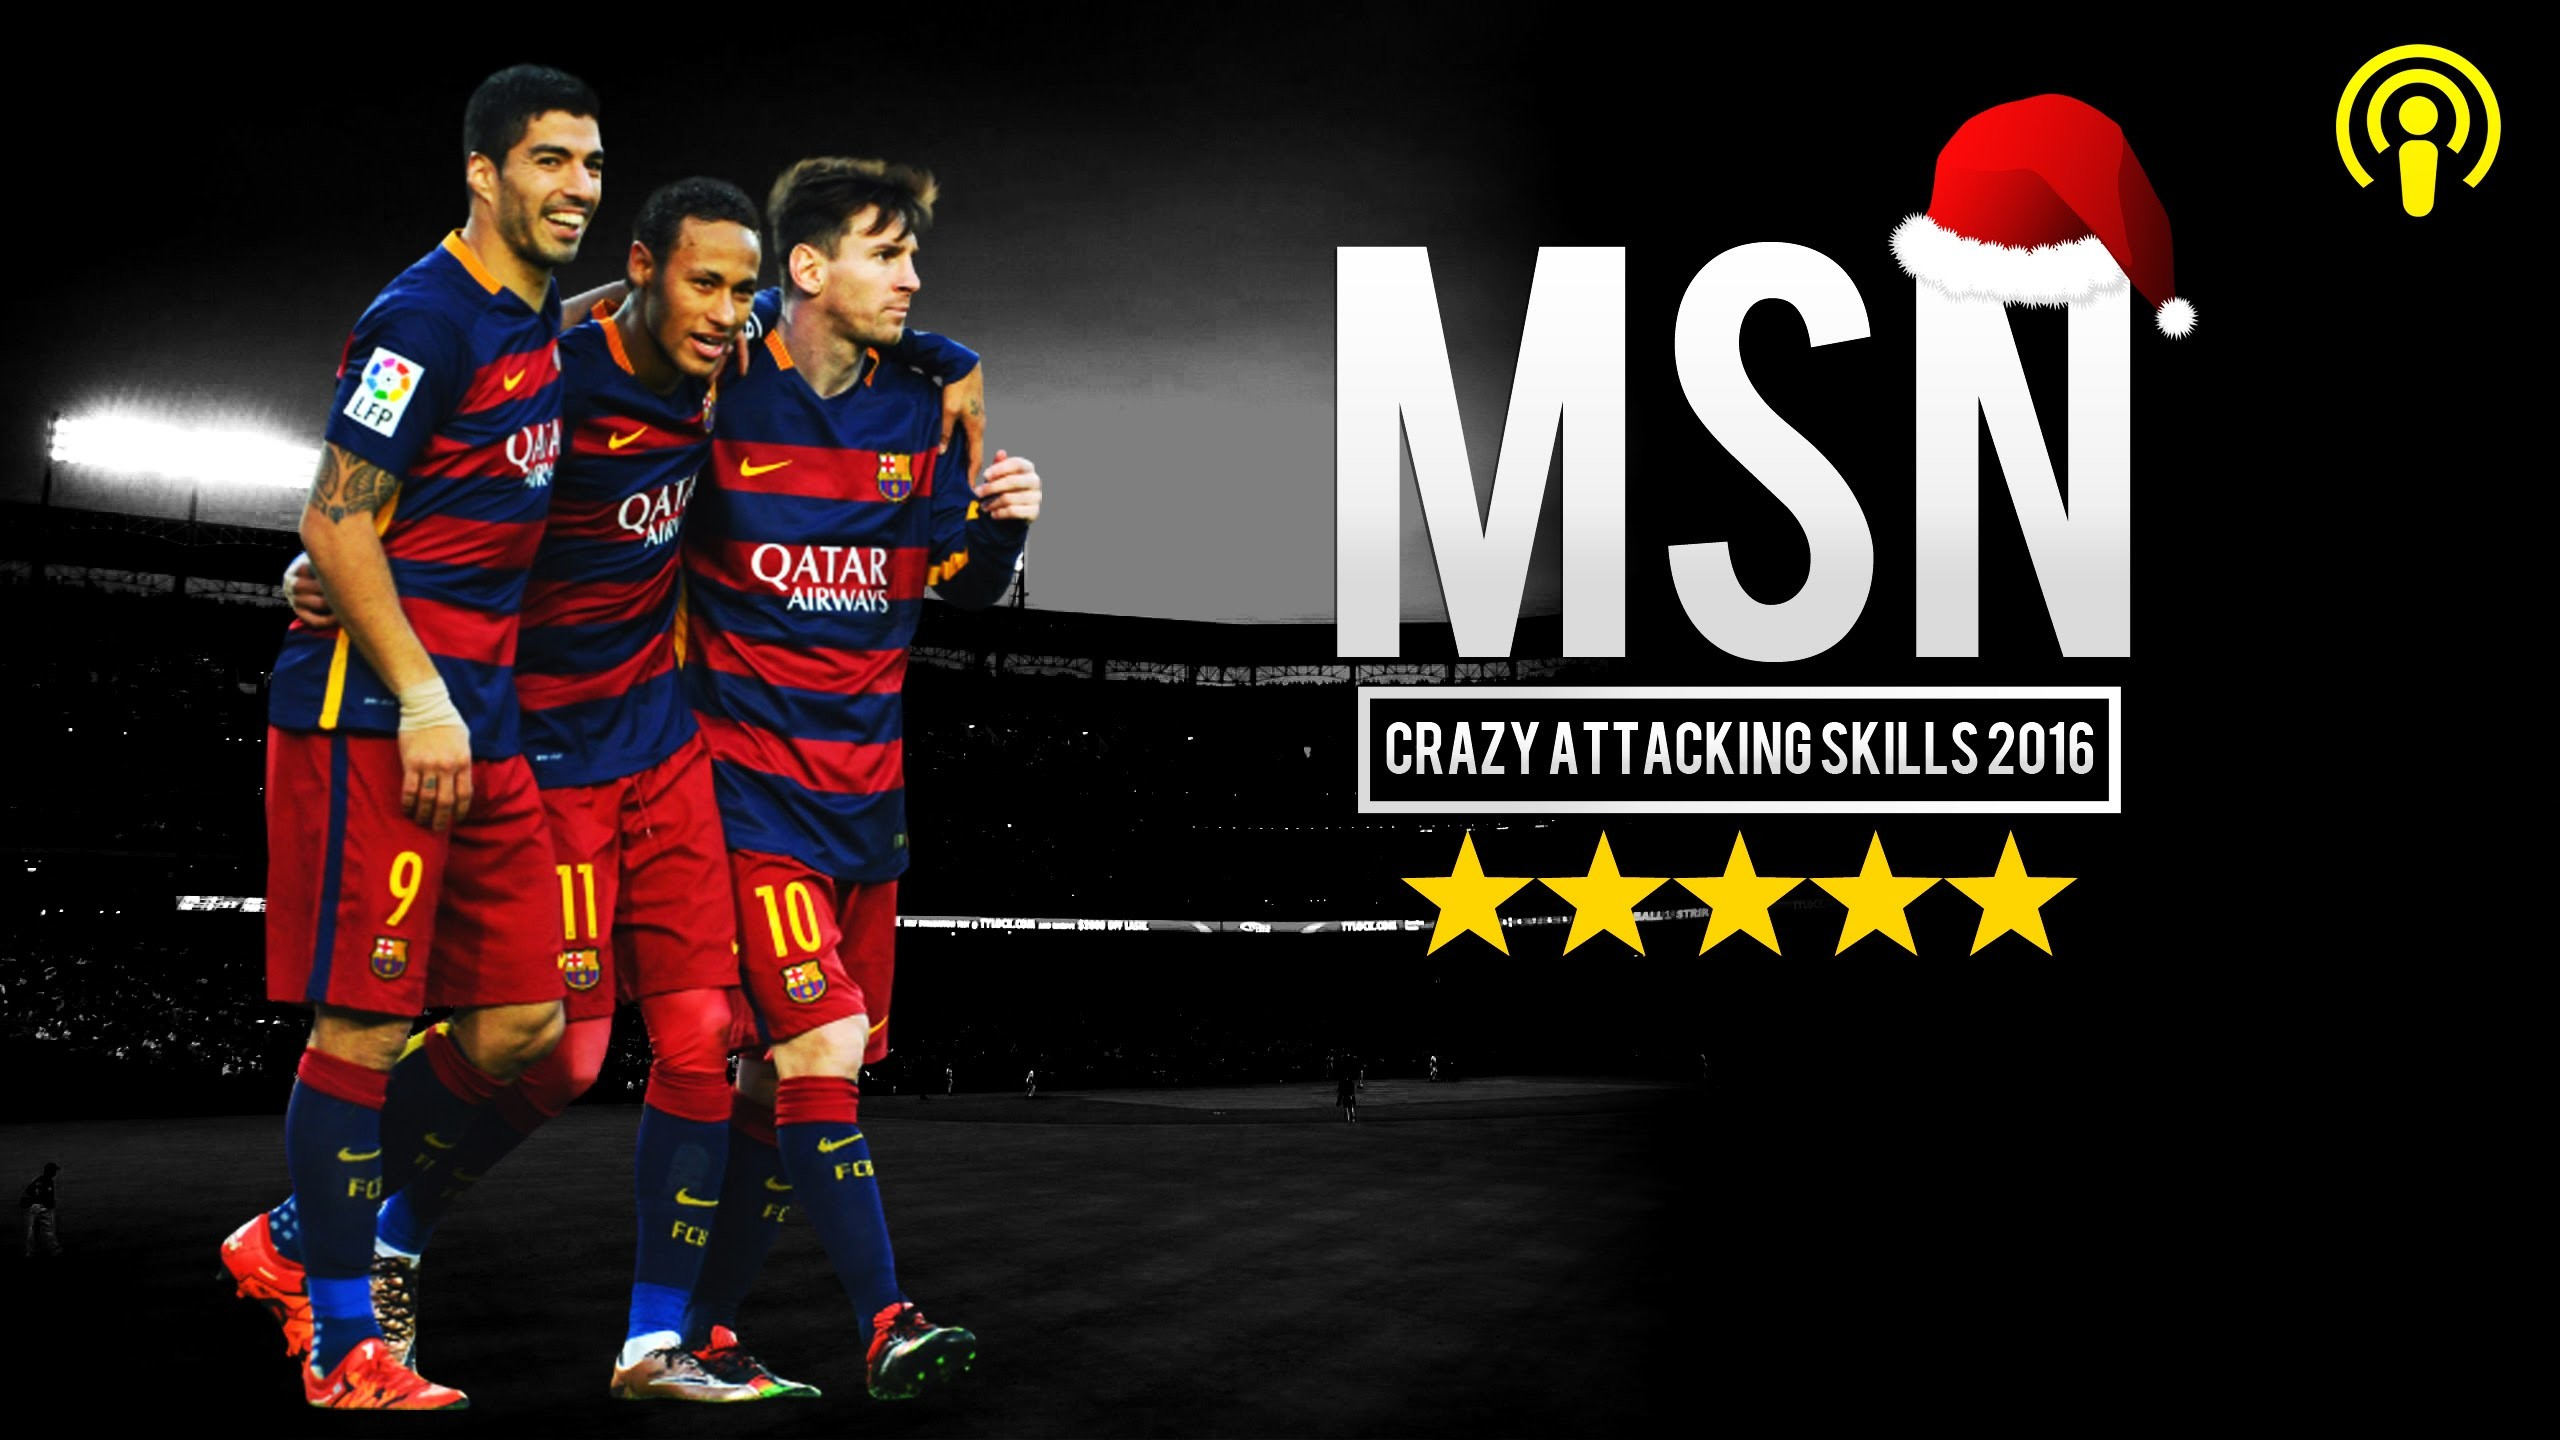 Messi Neymar Wallpapers Posted By Ethan Walker